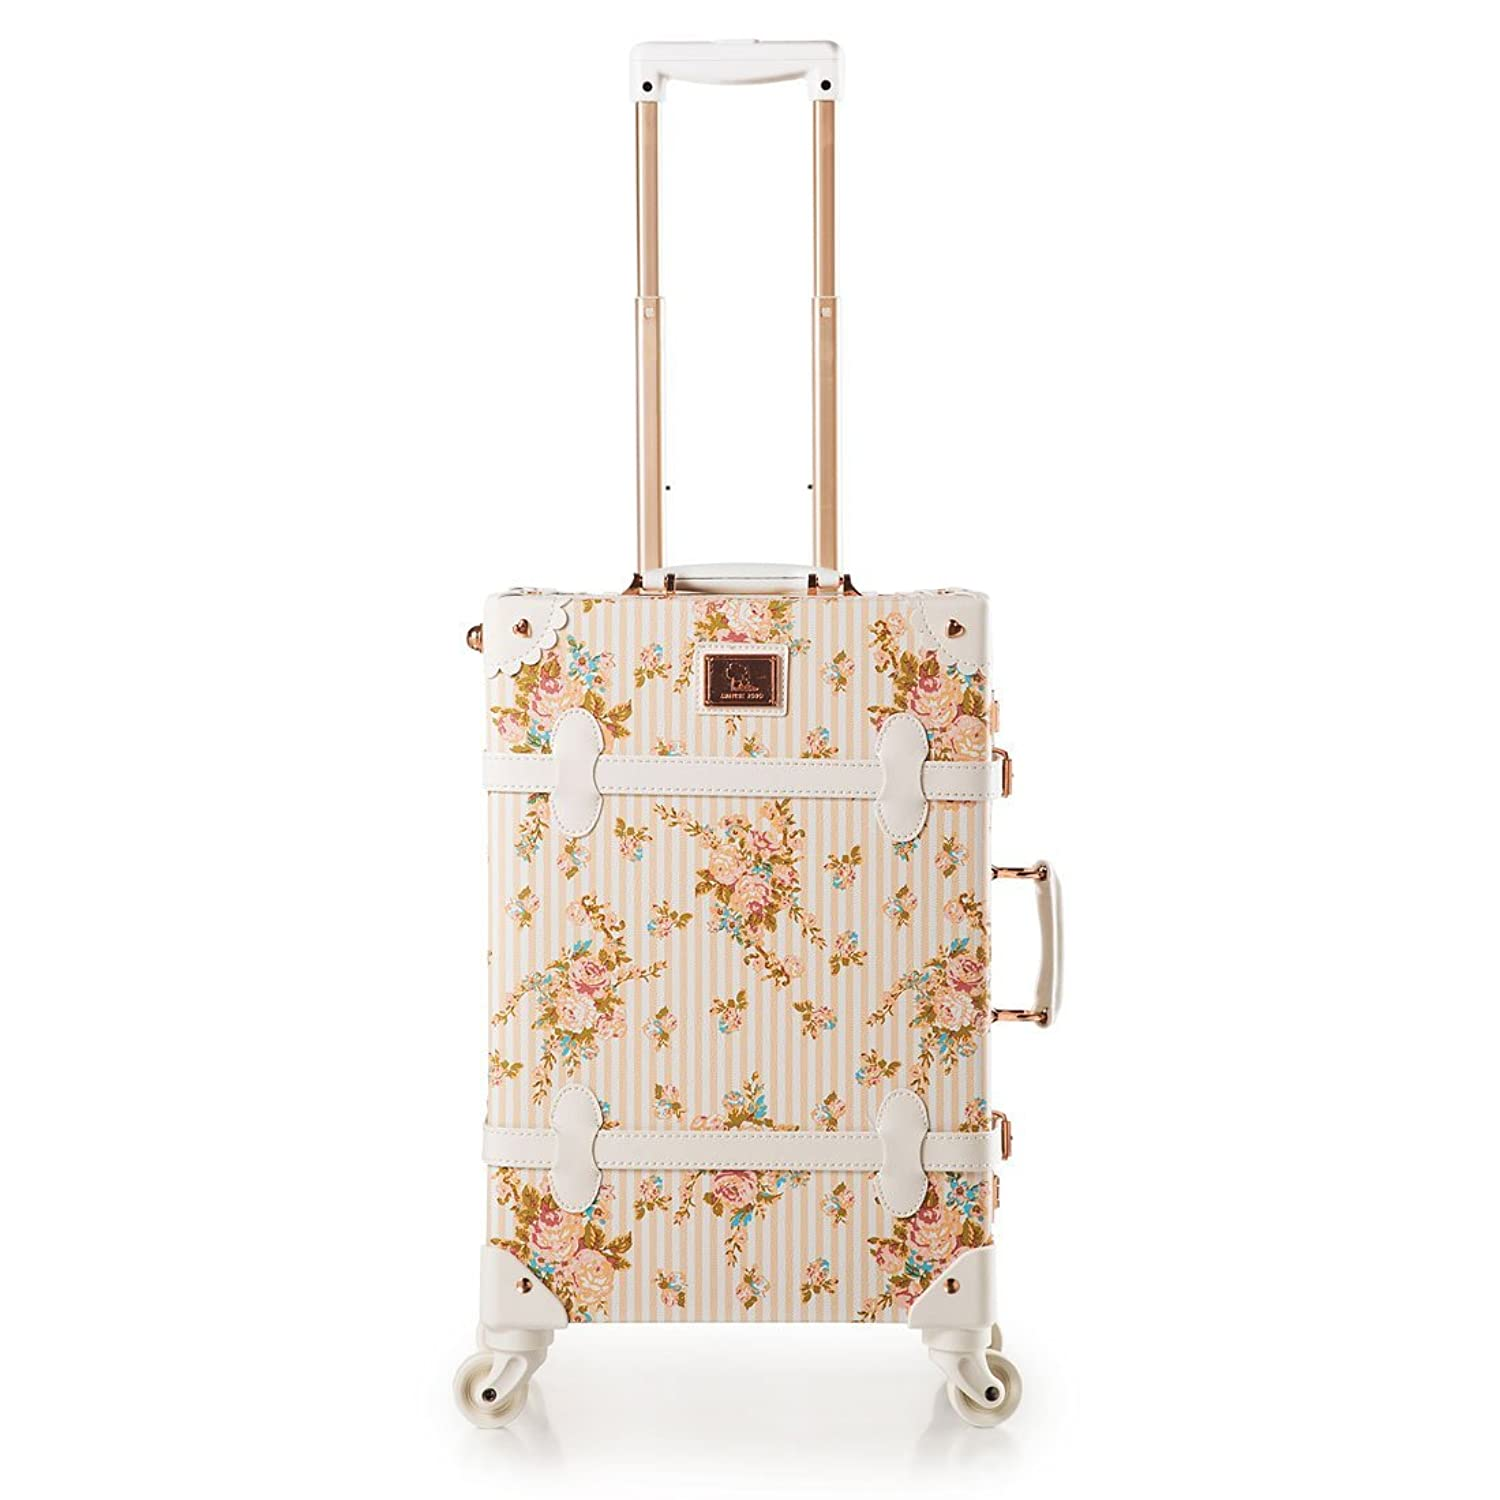 https://www.amazon.com/Floral-Rolling-Luggage-Leather-Suitcase/dp/B01CZR0Y3I/ref=sr_1_30?ie=UTF8&qid=1510400509&sr=8-30&keywords=cute+CARRY+ON